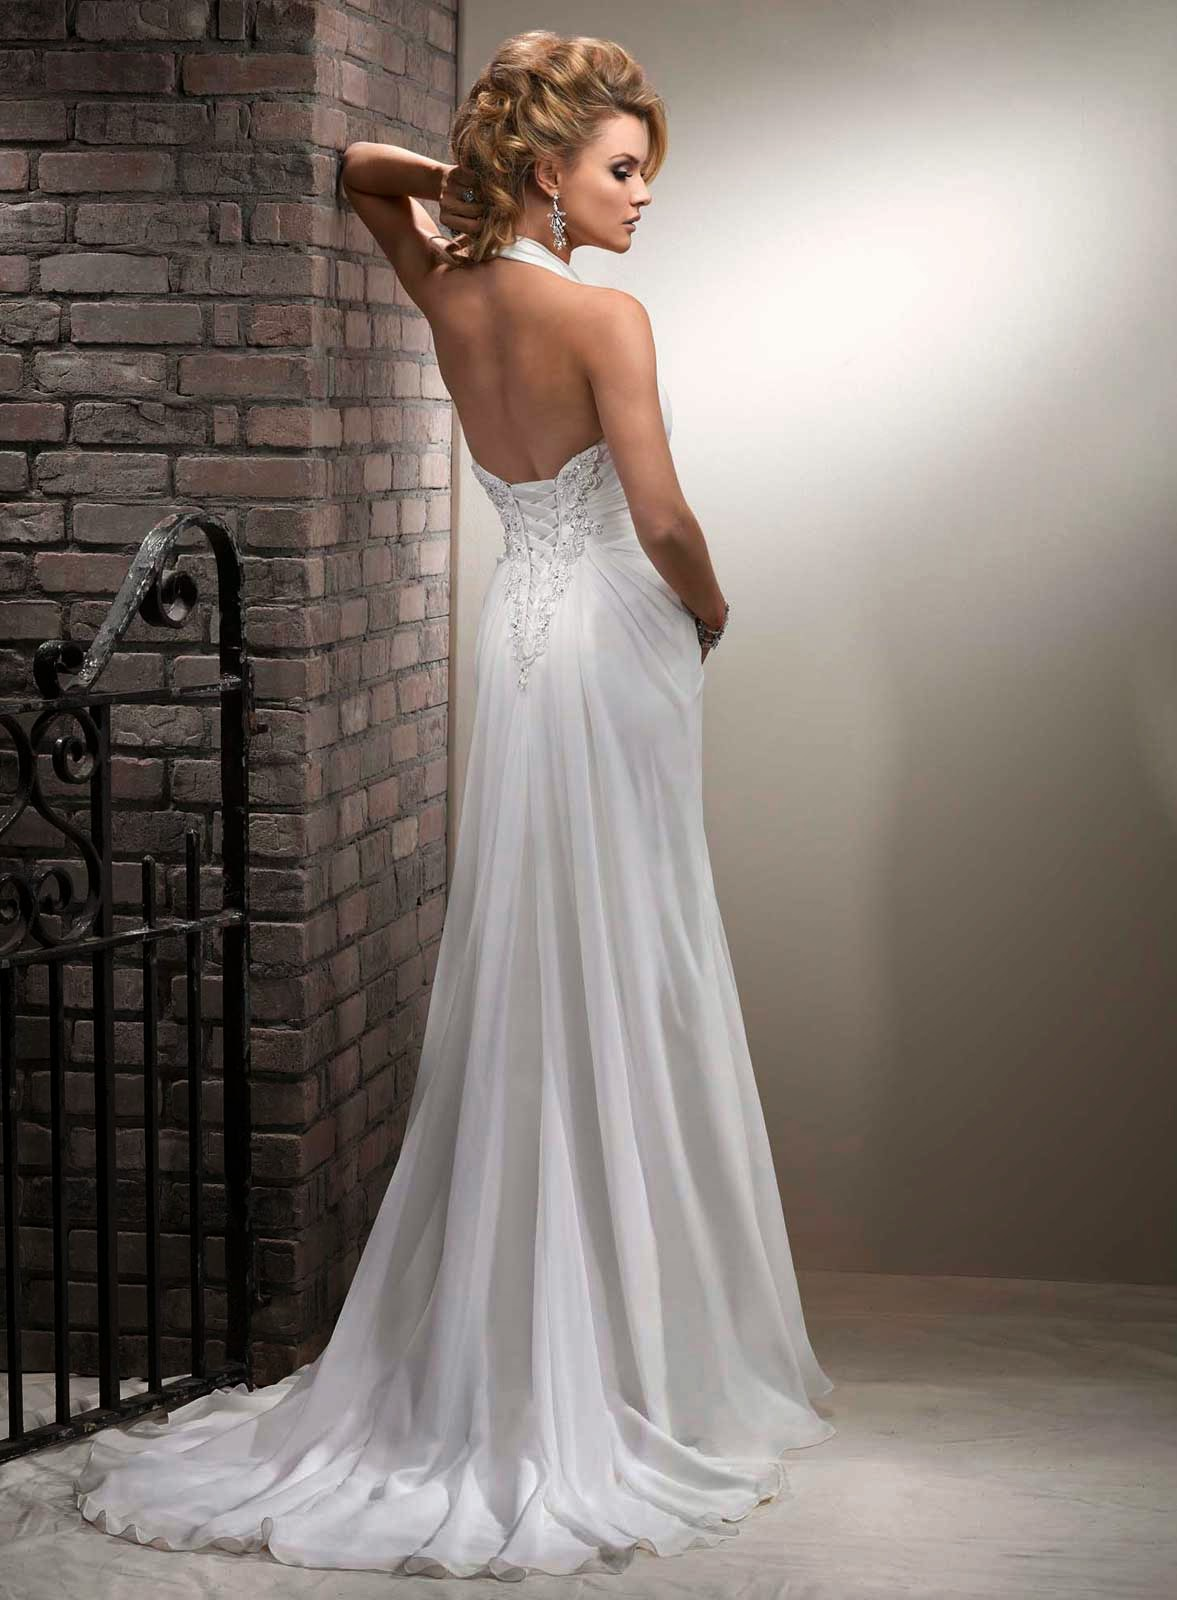 Informal Wedding Dresses For Older Brides